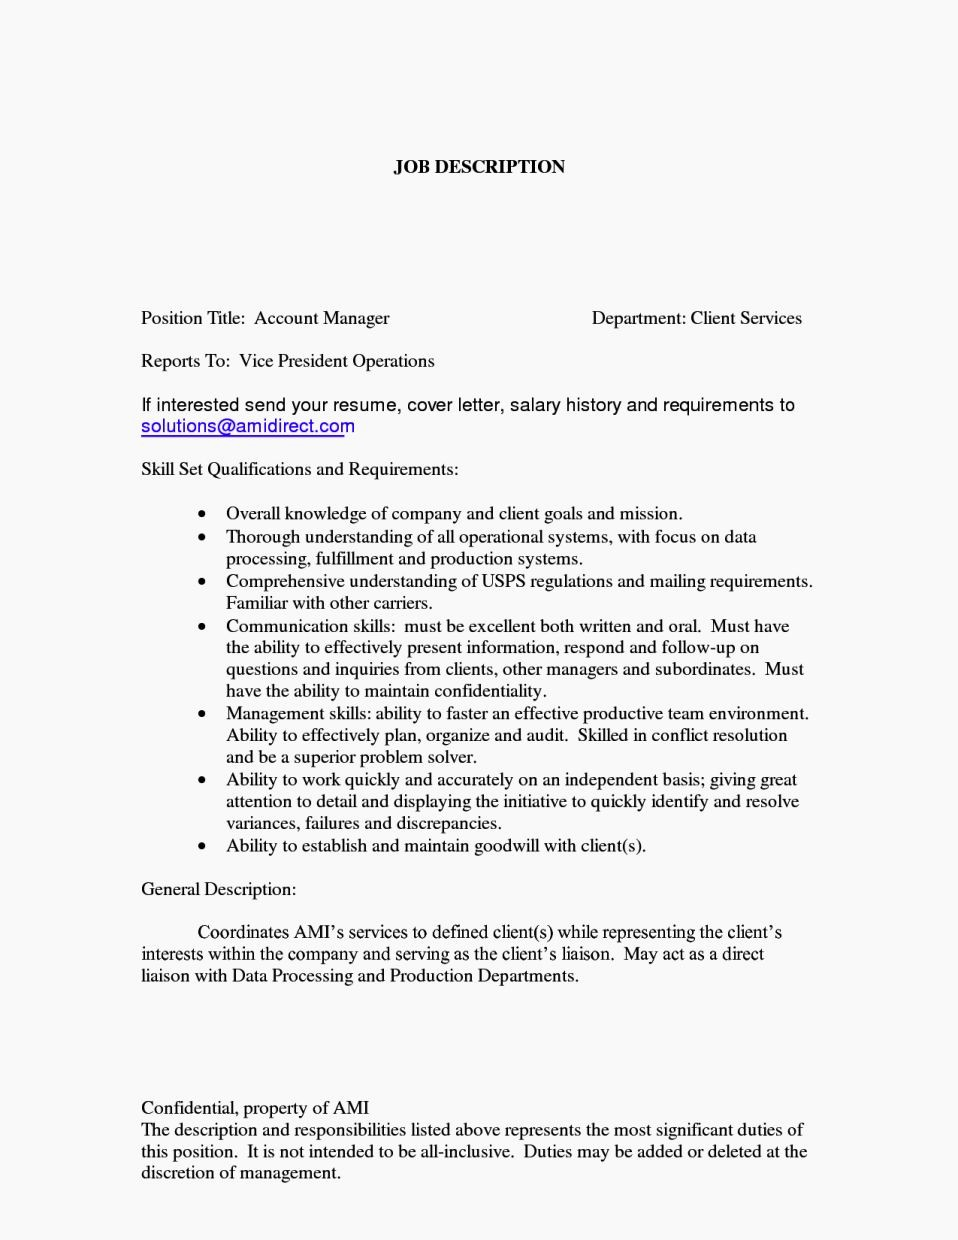 Salary History In Cover Letter Beautiful Cover Letter Examples with Salary Requirement